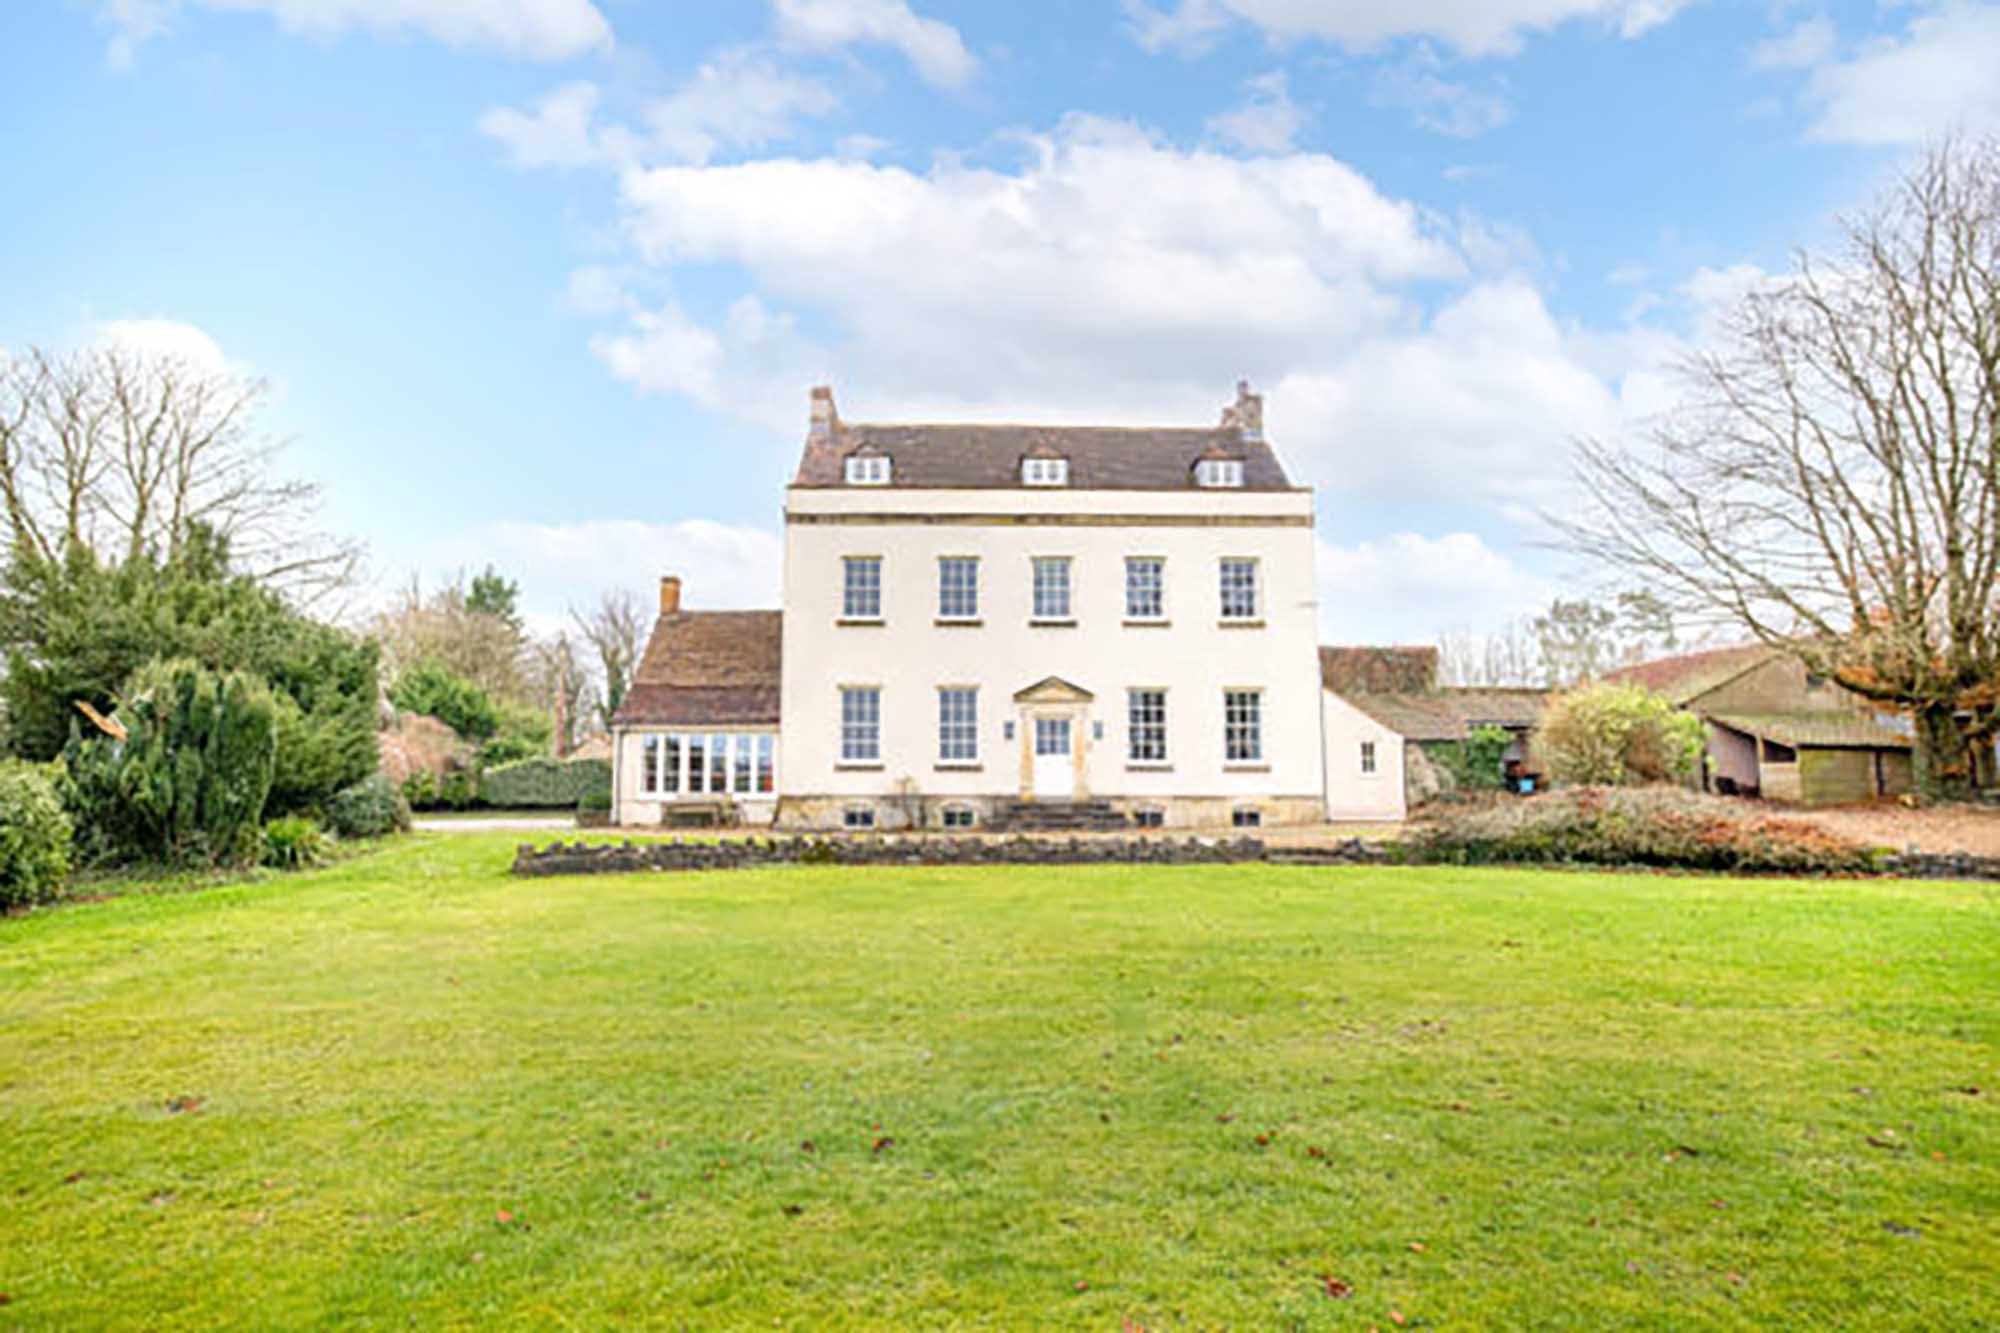 Whatley, Frome – Old Rectory, land, views, annexe potential